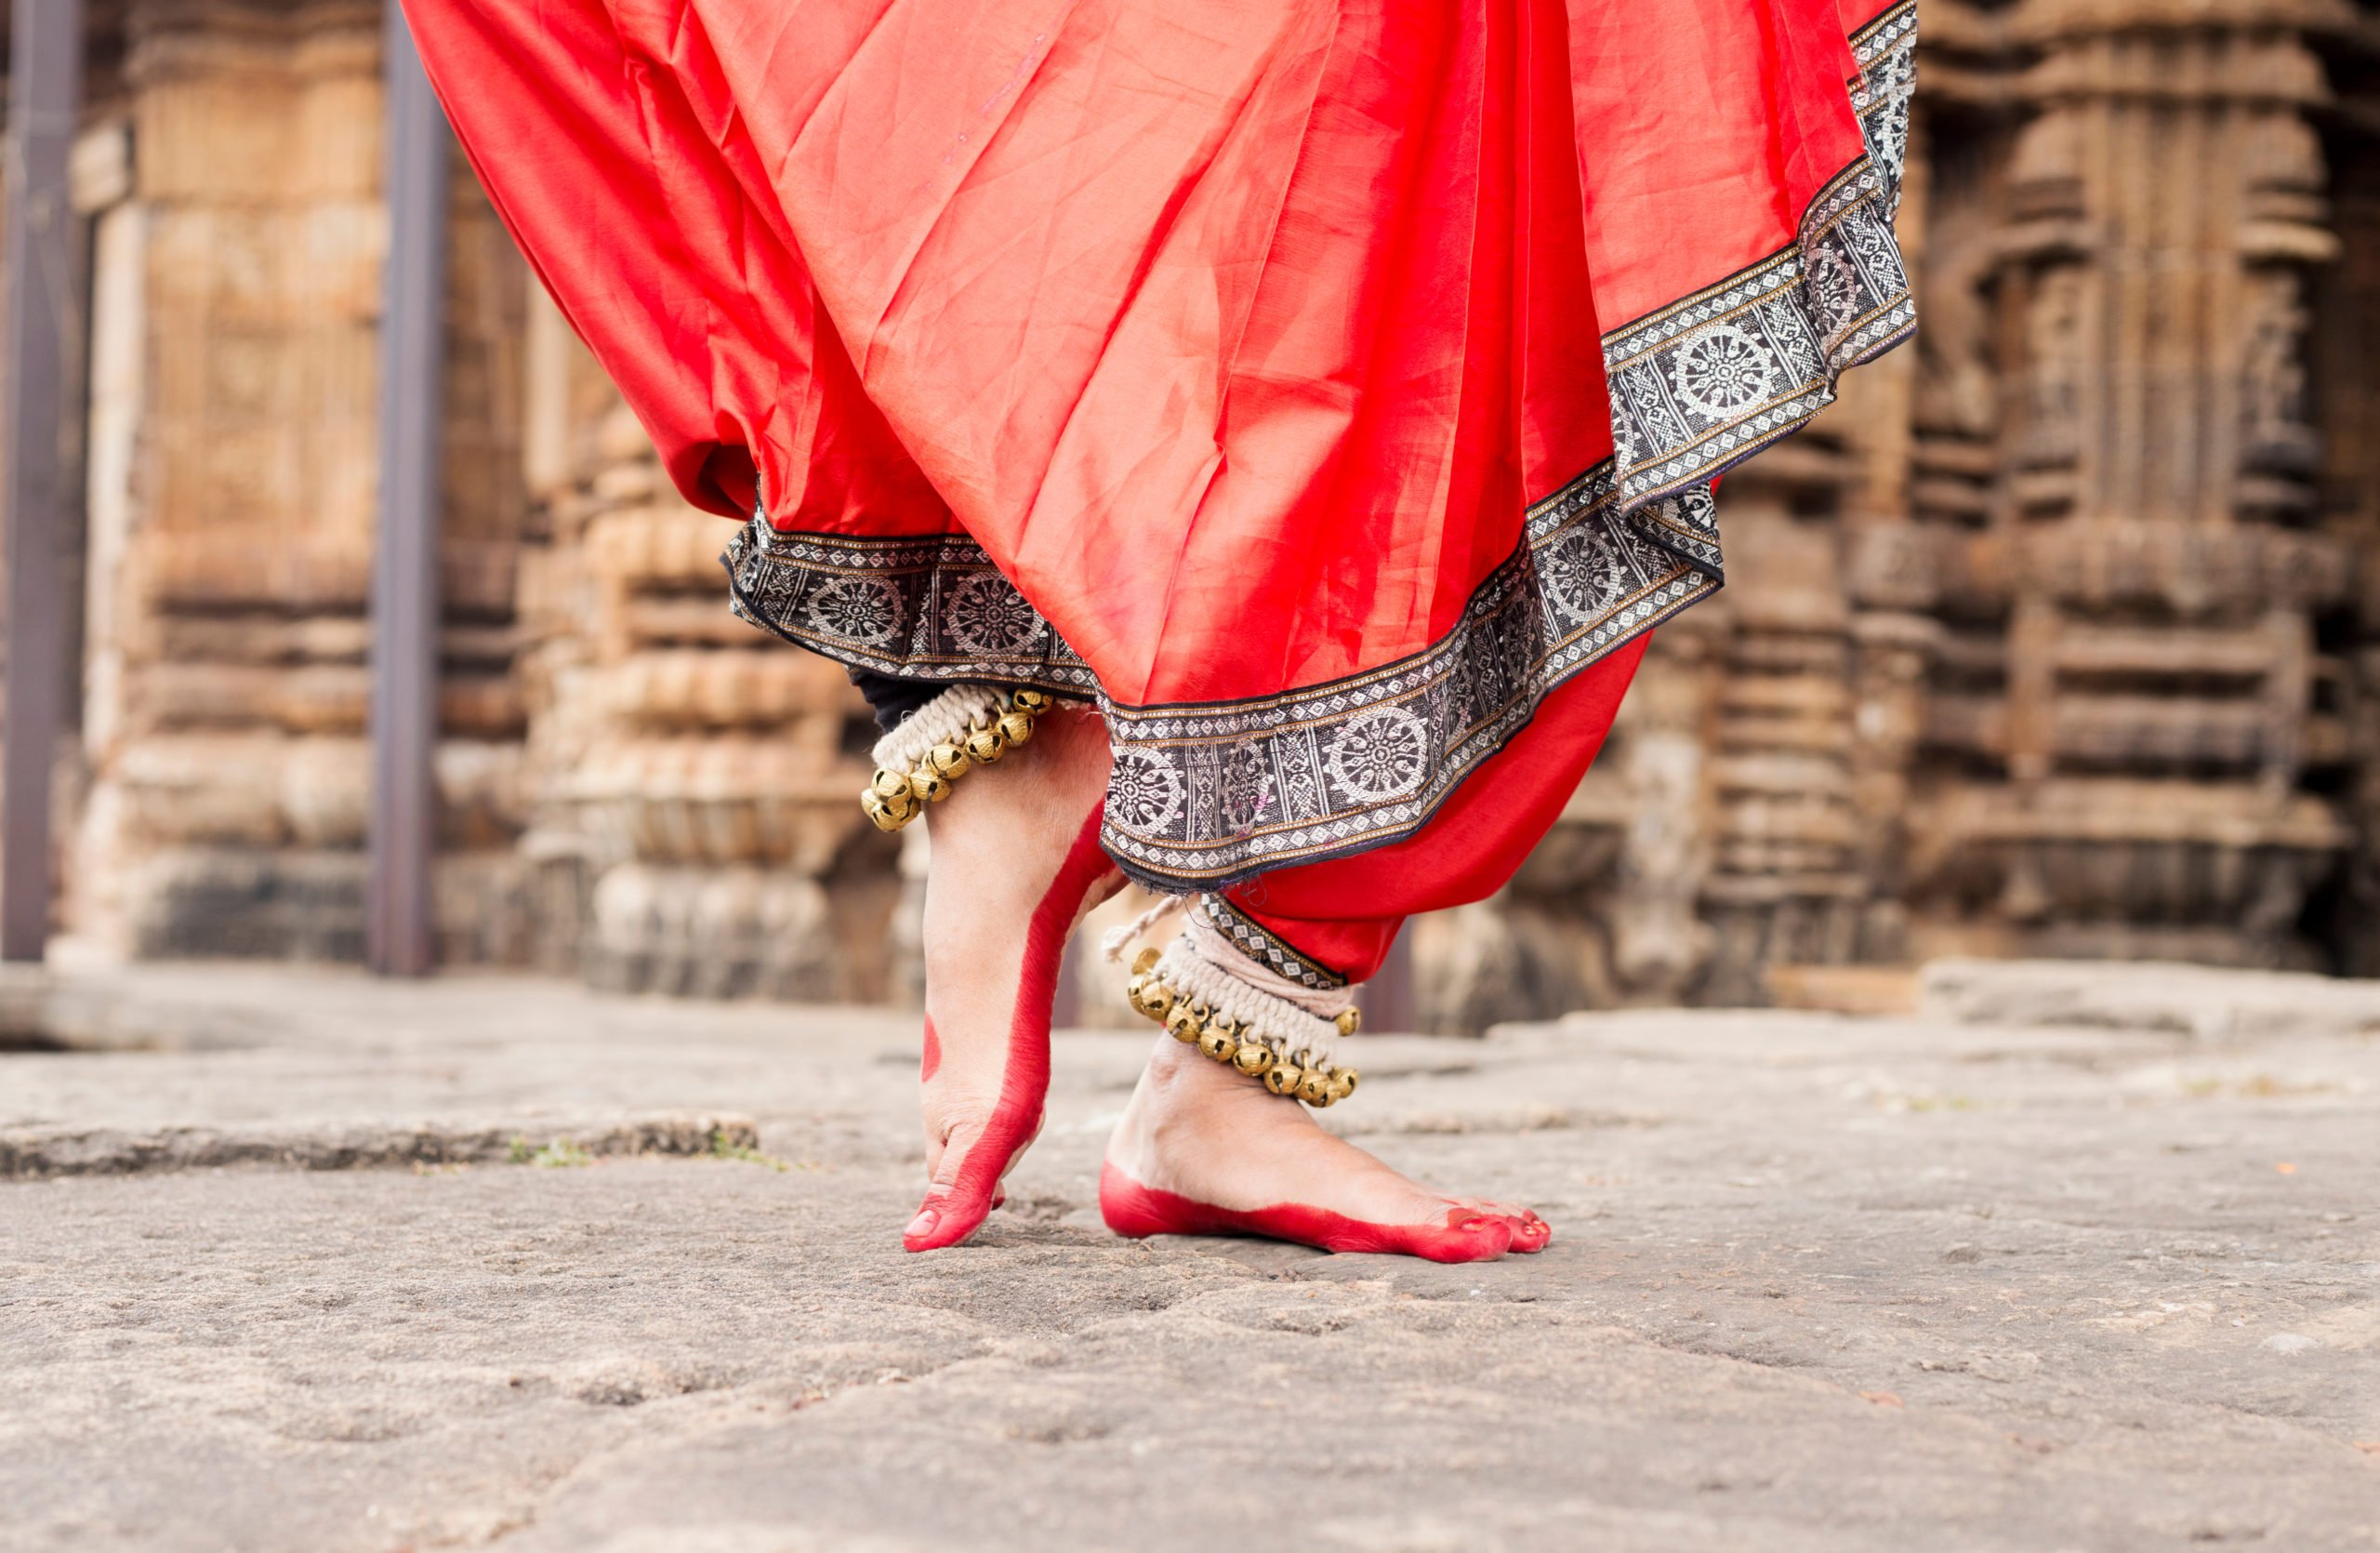 Discover The Amazing Bharatnatyam Dance Experience In Chennai